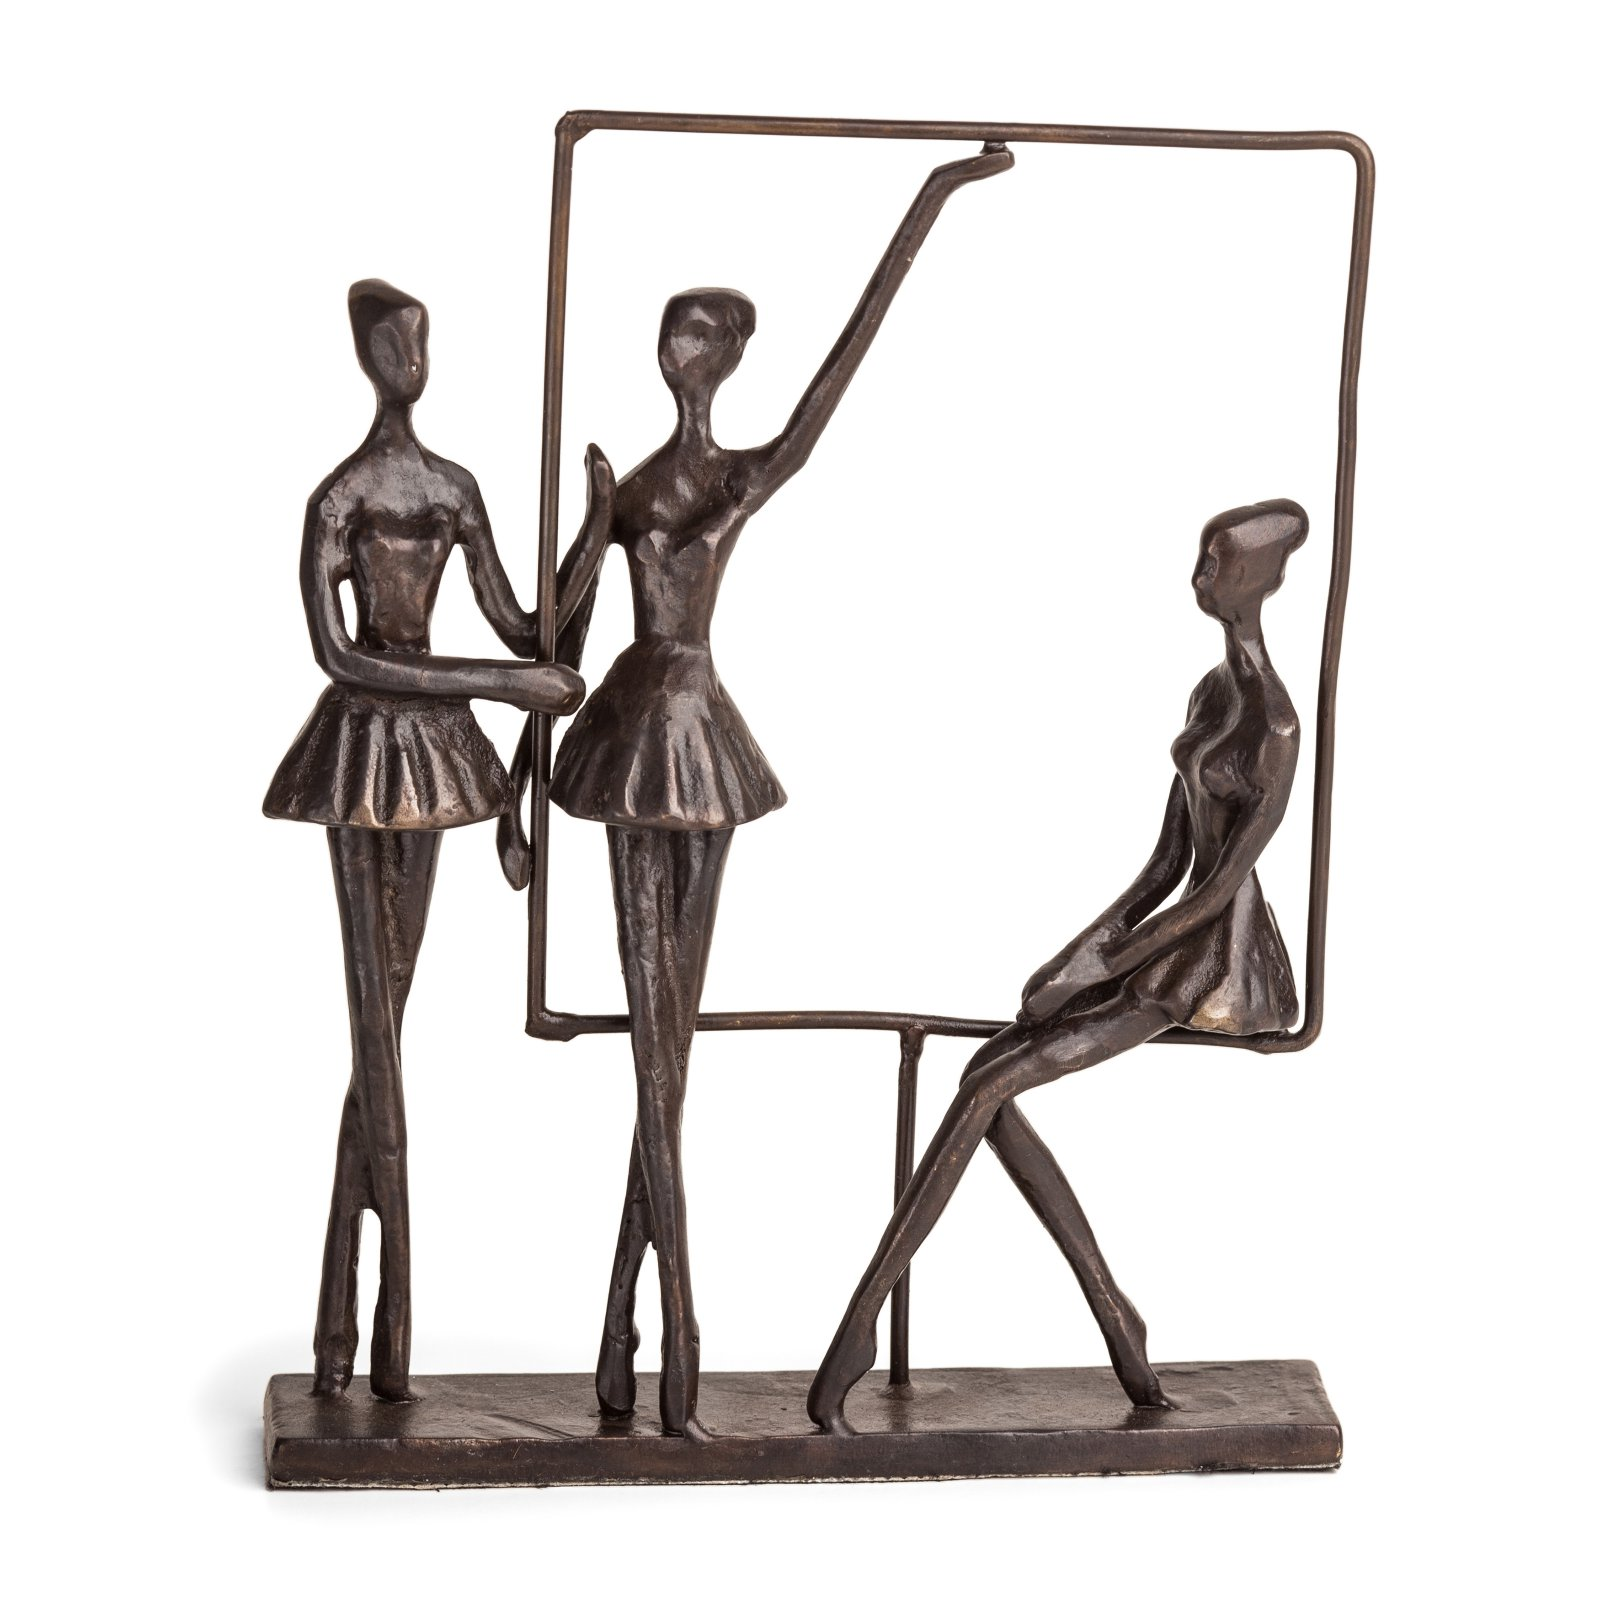 Danya B Ballerinas on Frame Sculpture